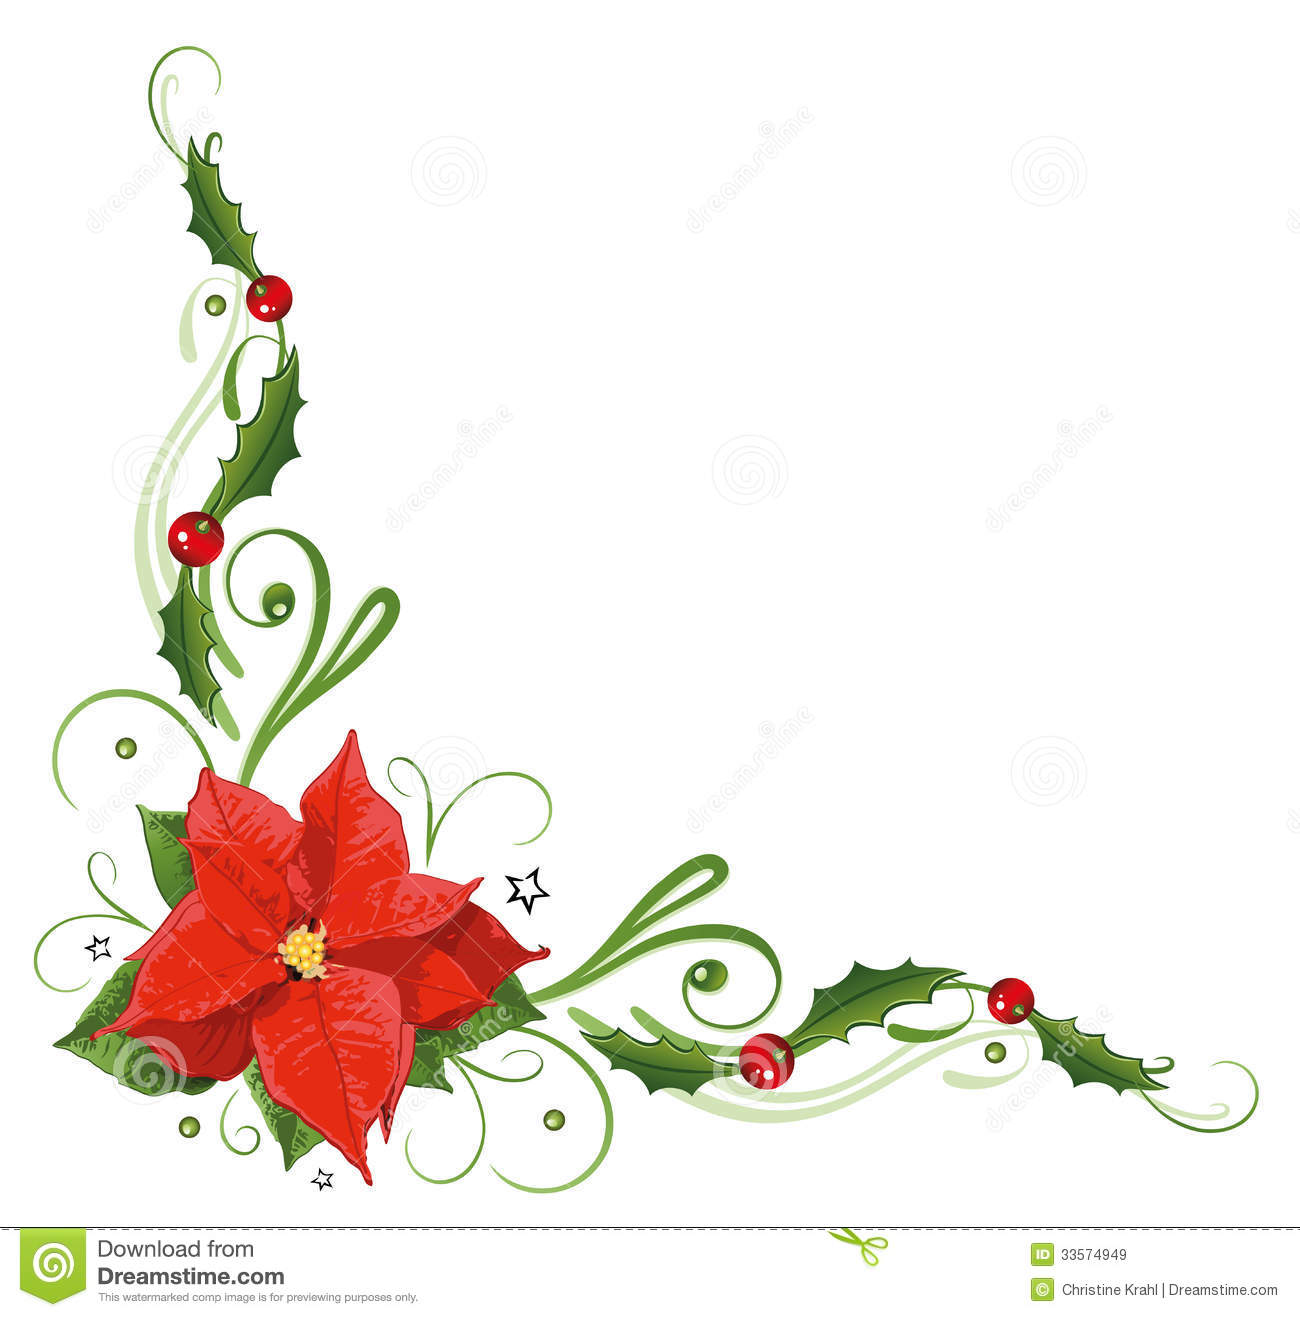 Poinsettia clipart #13, Download drawings